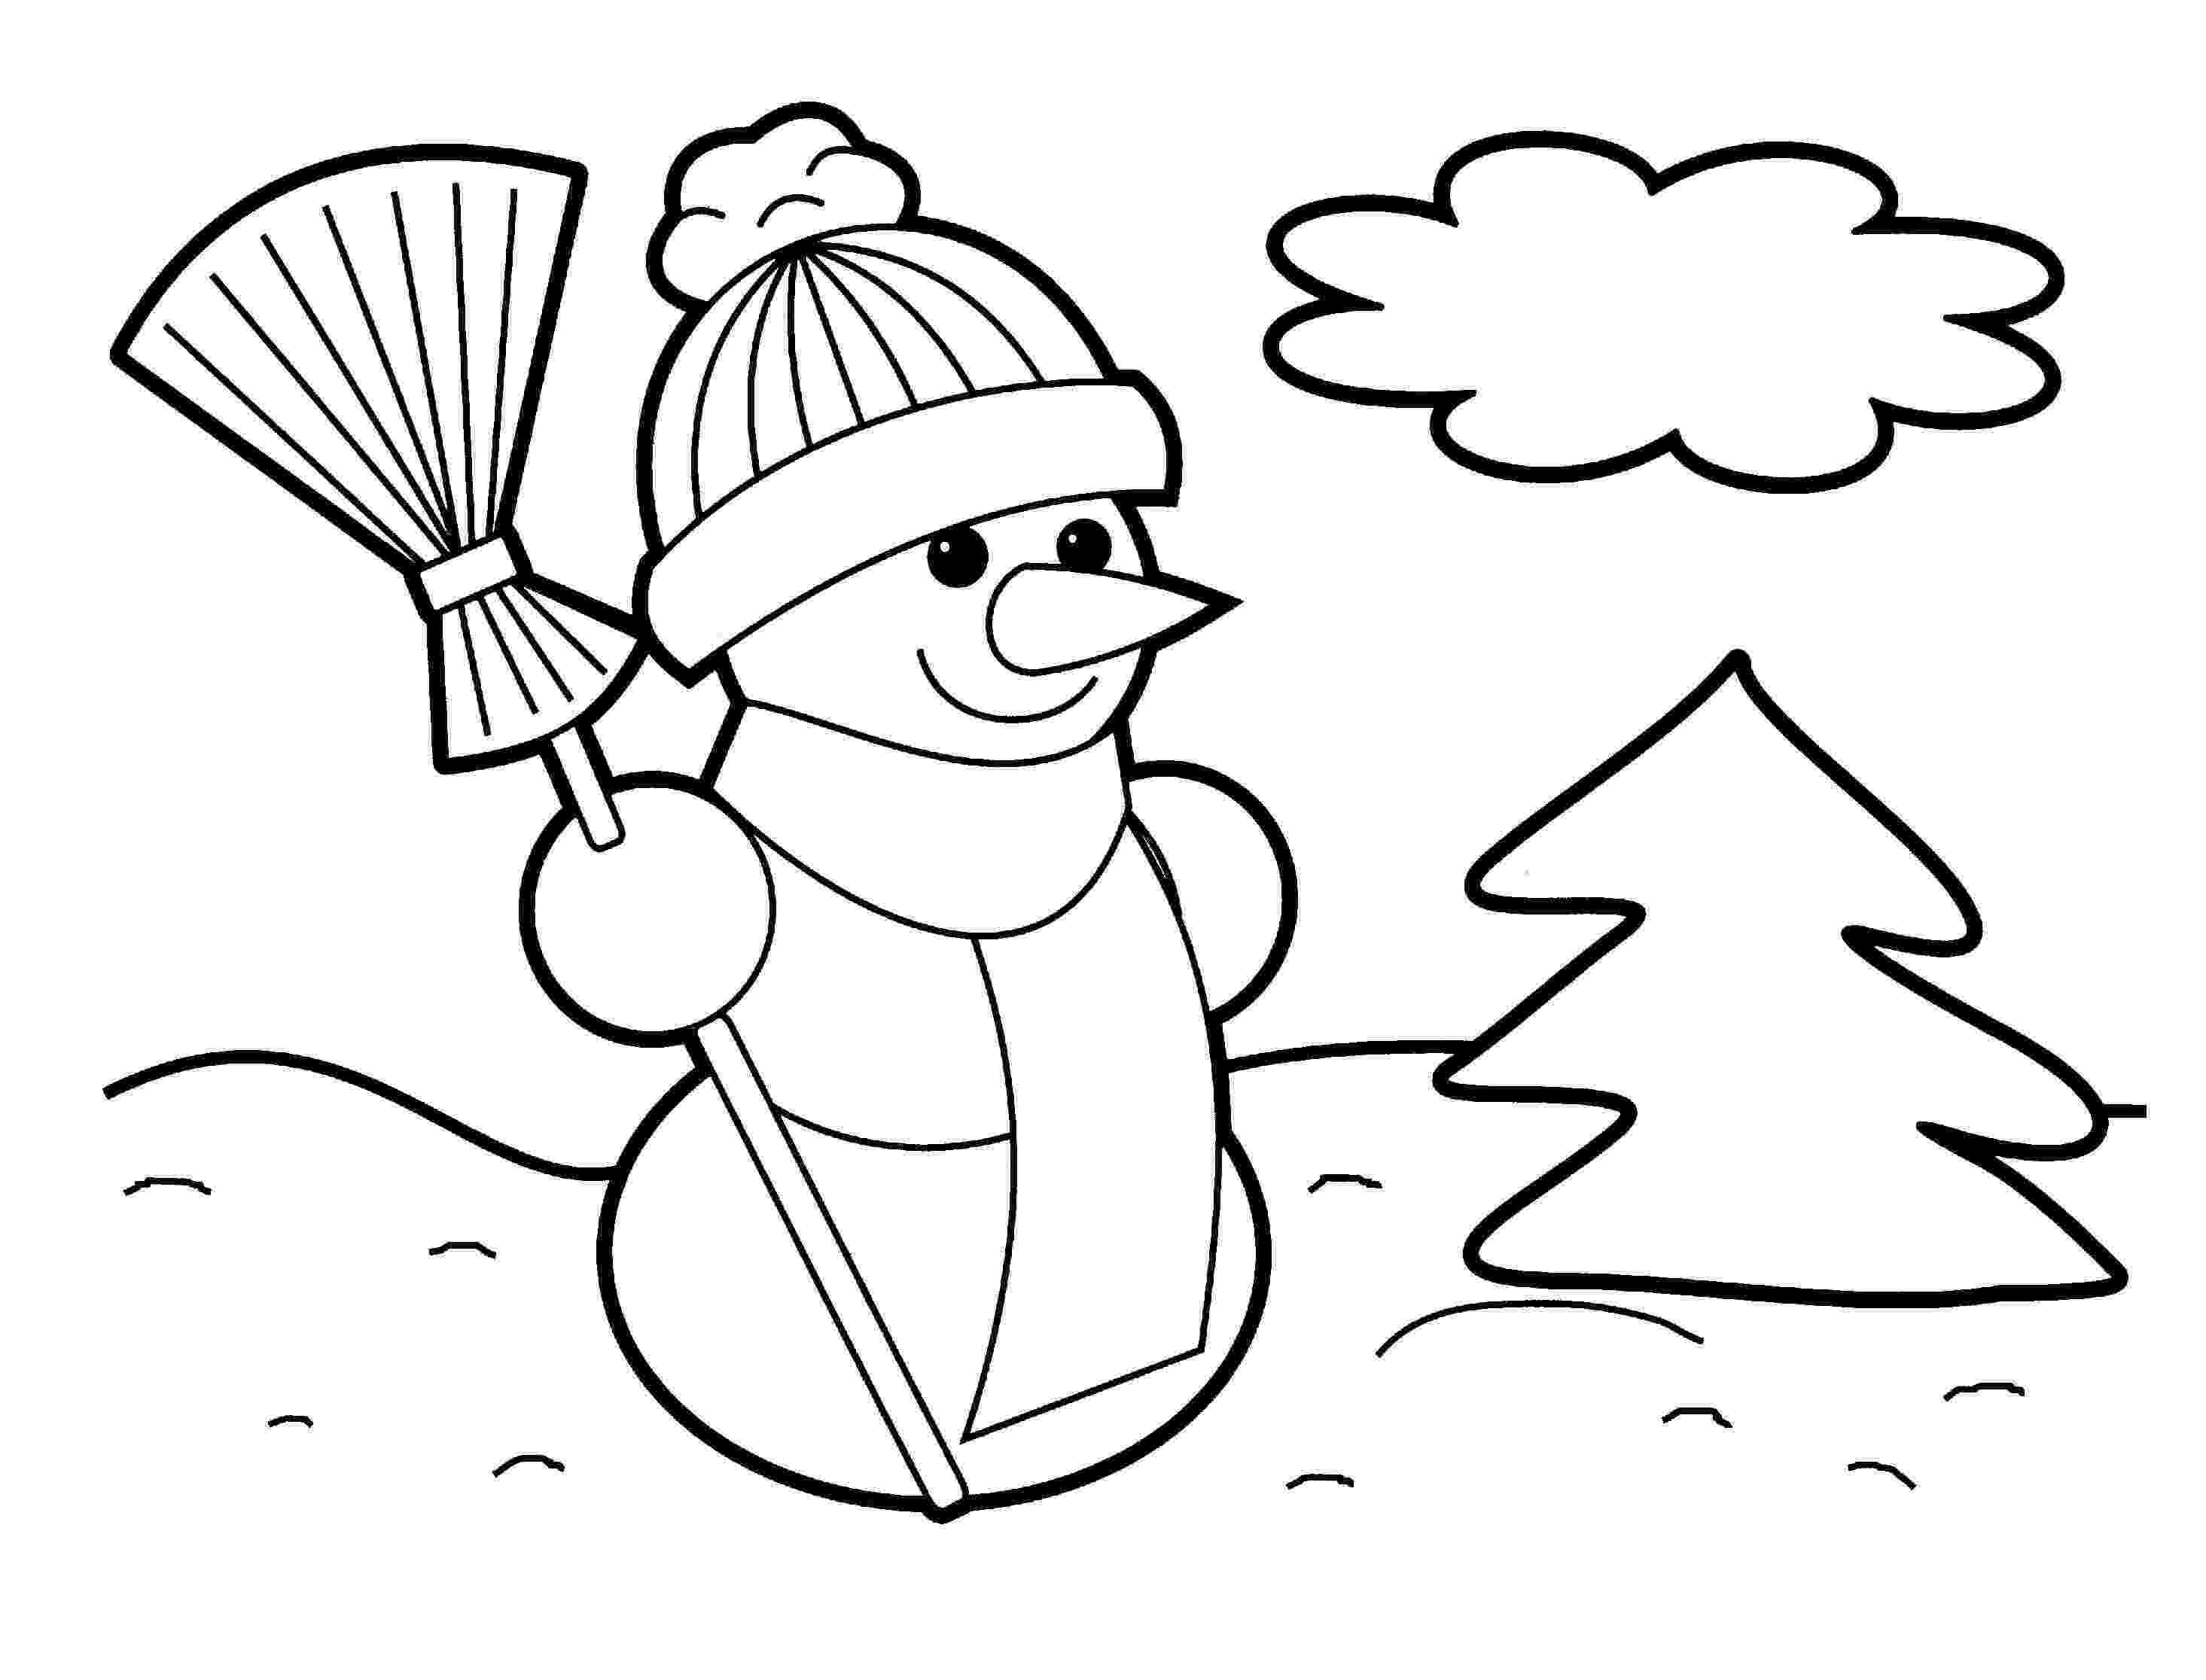 colouring pages about christmas holidays coloring pages download and print for free pages colouring christmas about